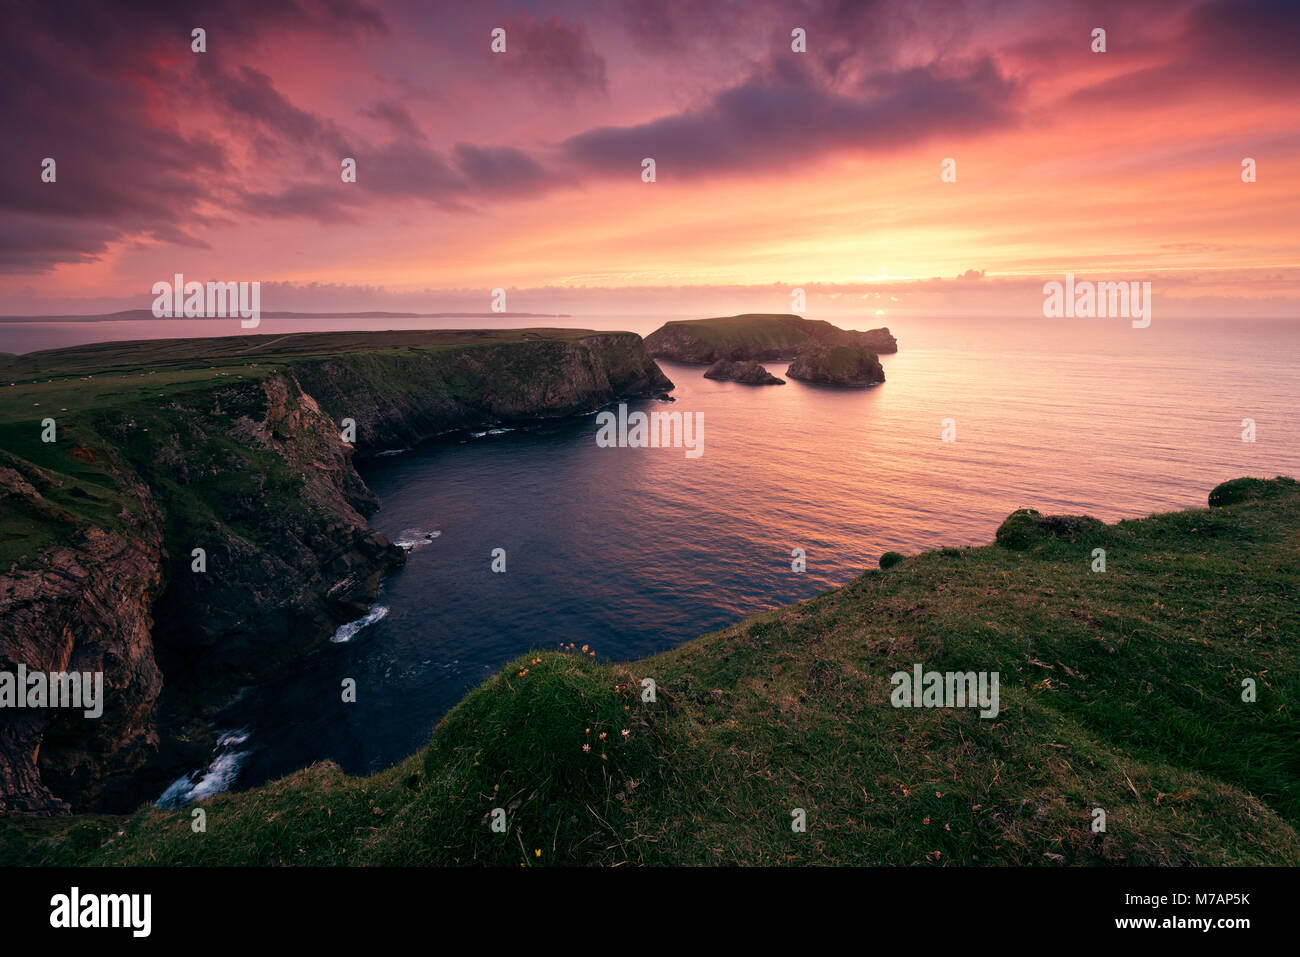 red sunset at the cliffs of Benwee Head, County Mayo, Ireland - Stock Image